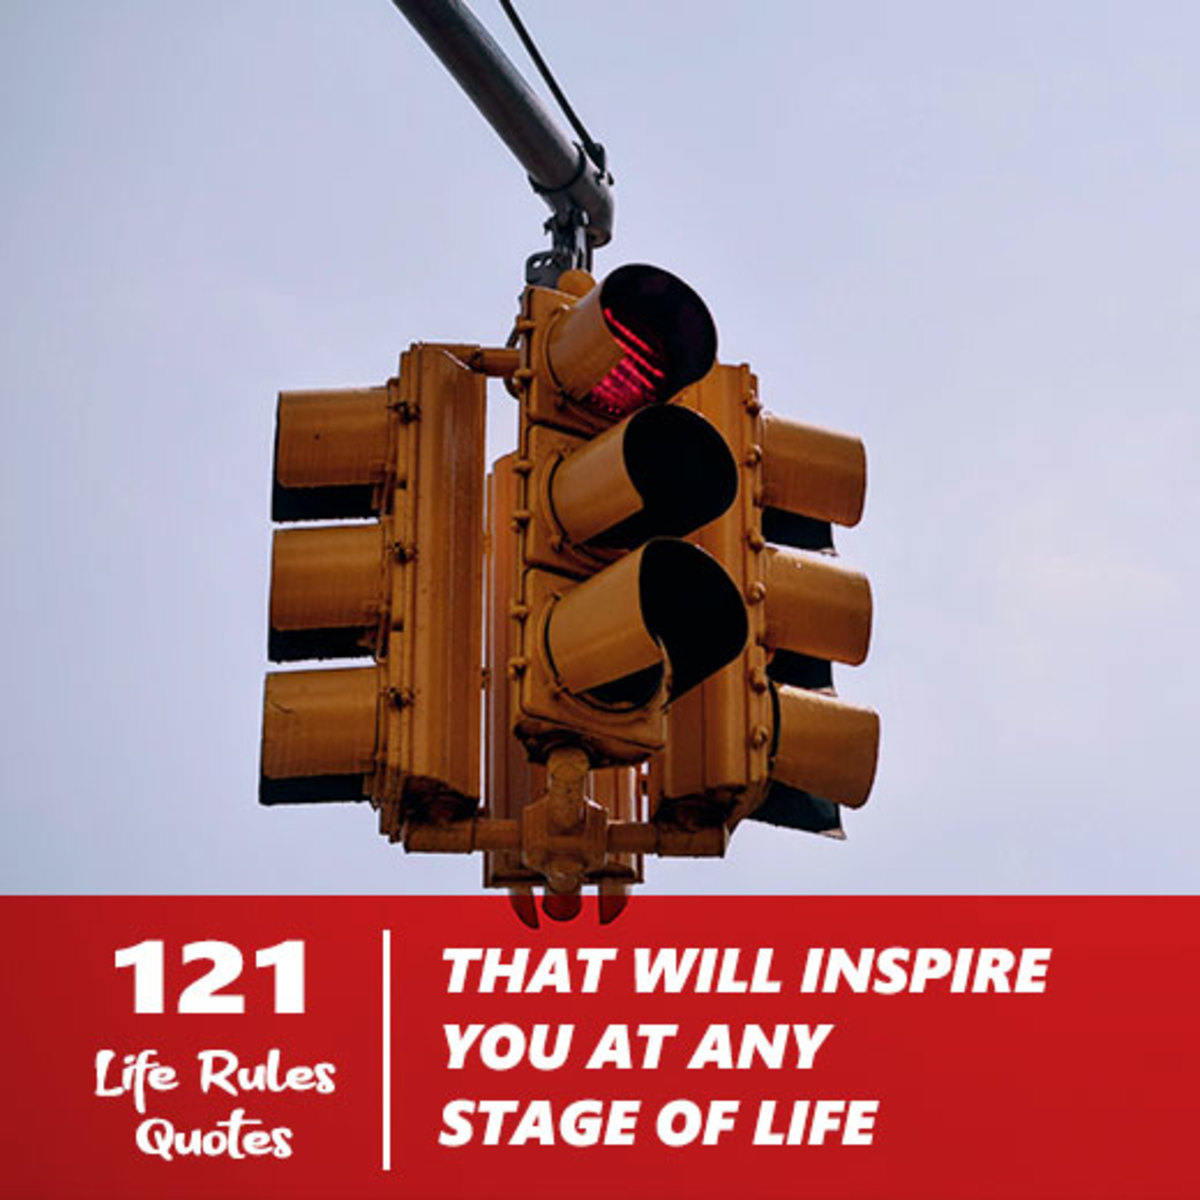 121 Life Rules Quotes That Will Inspire You at Any Stage of Life